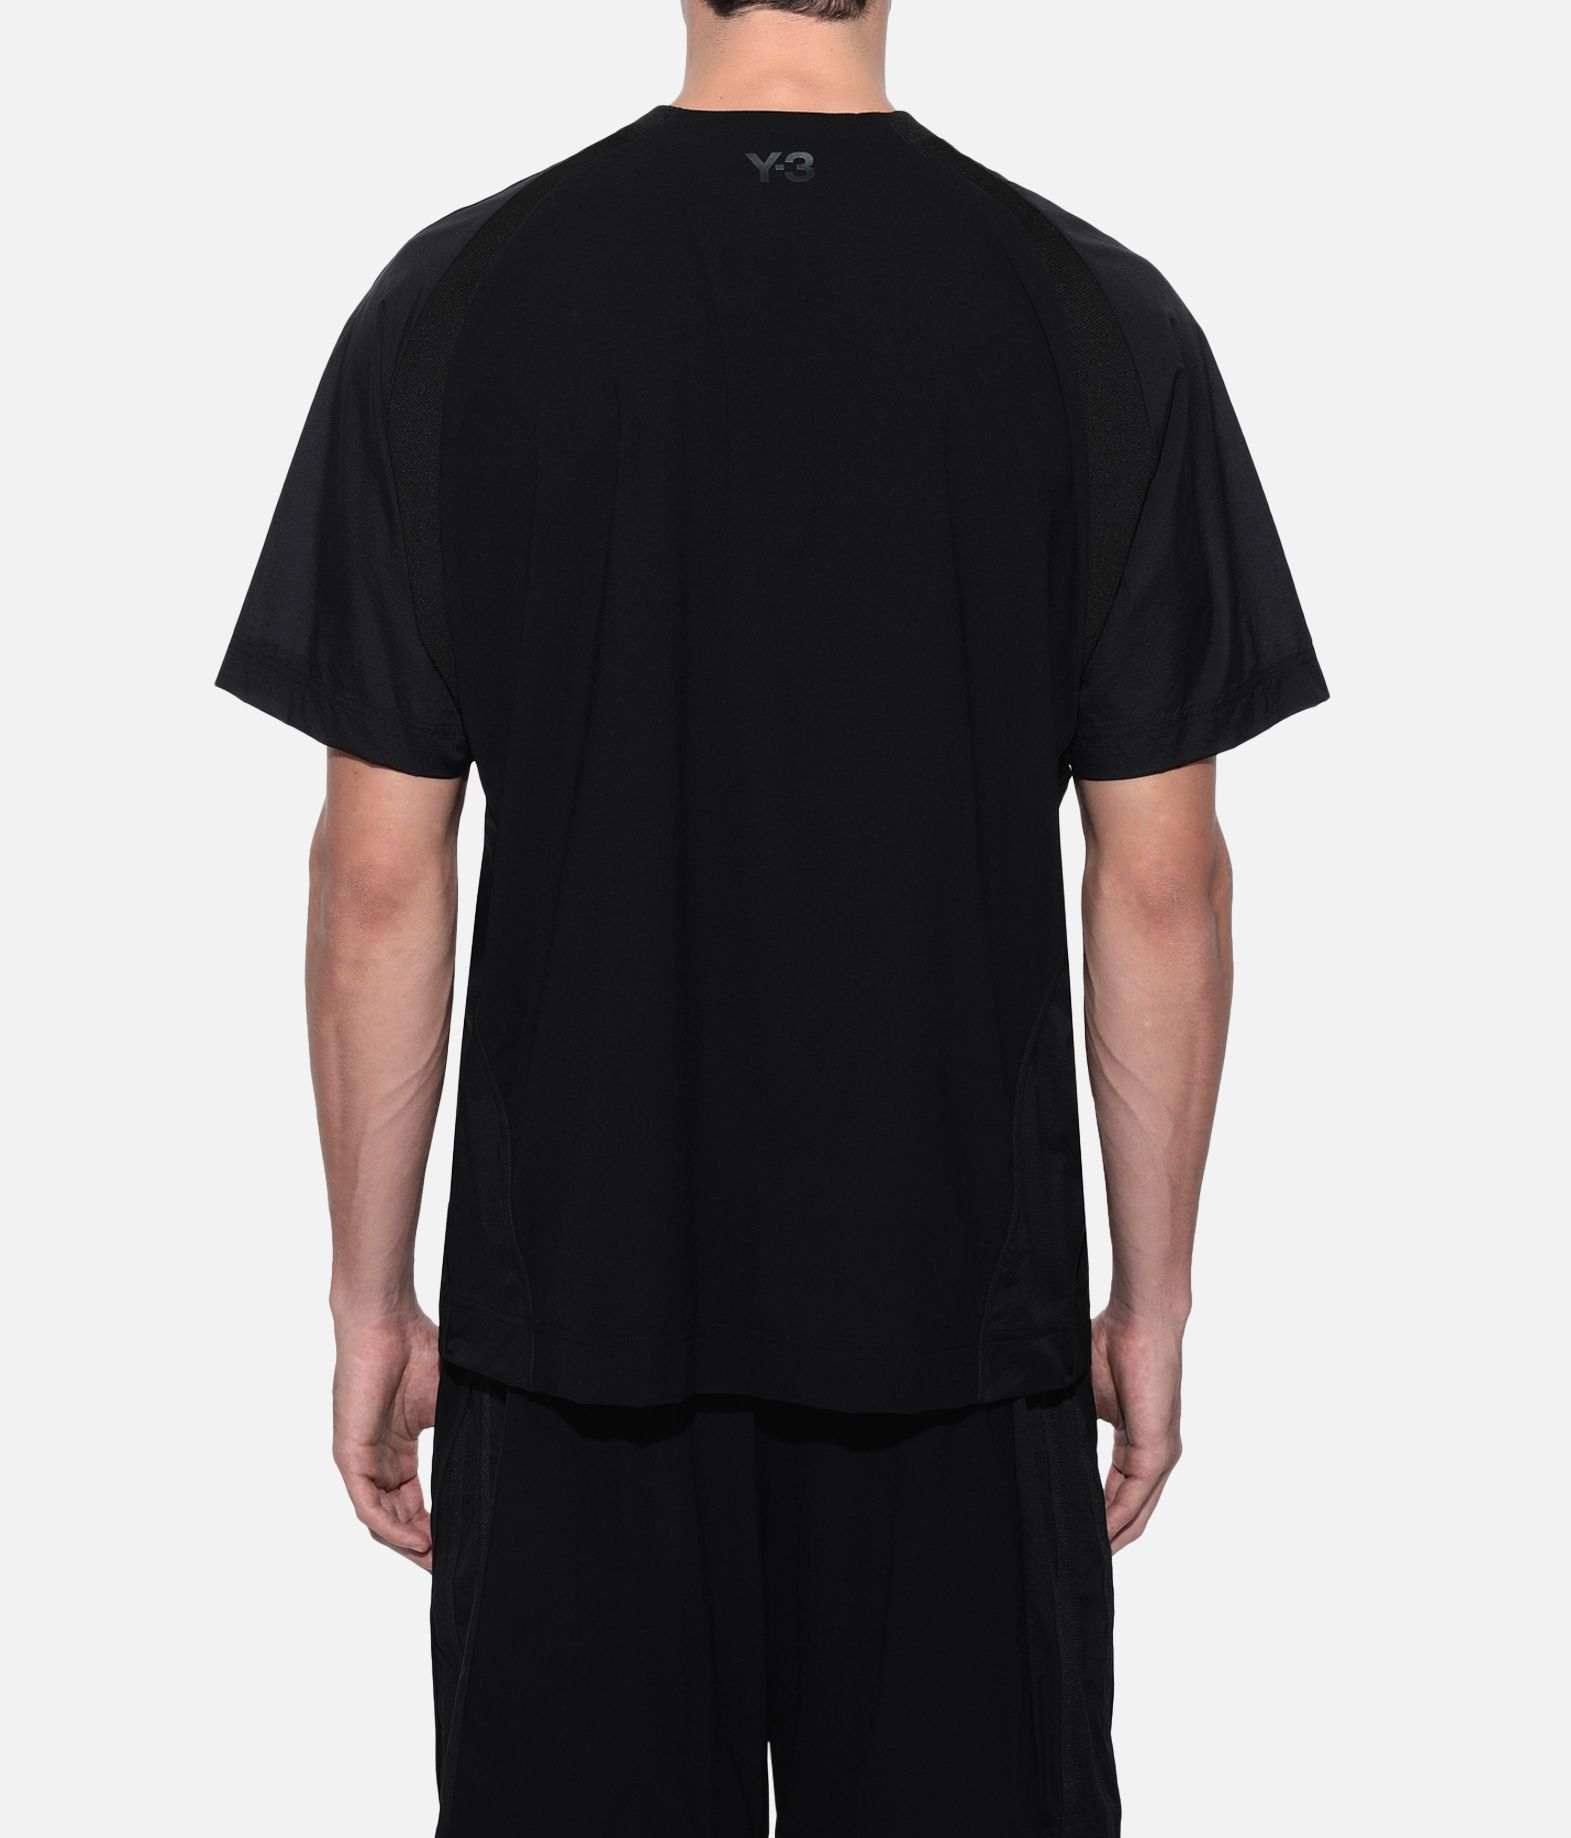 Y-3 Y-3 3-Stripes Material Mix Tee T-shirt maniche corte Uomo d